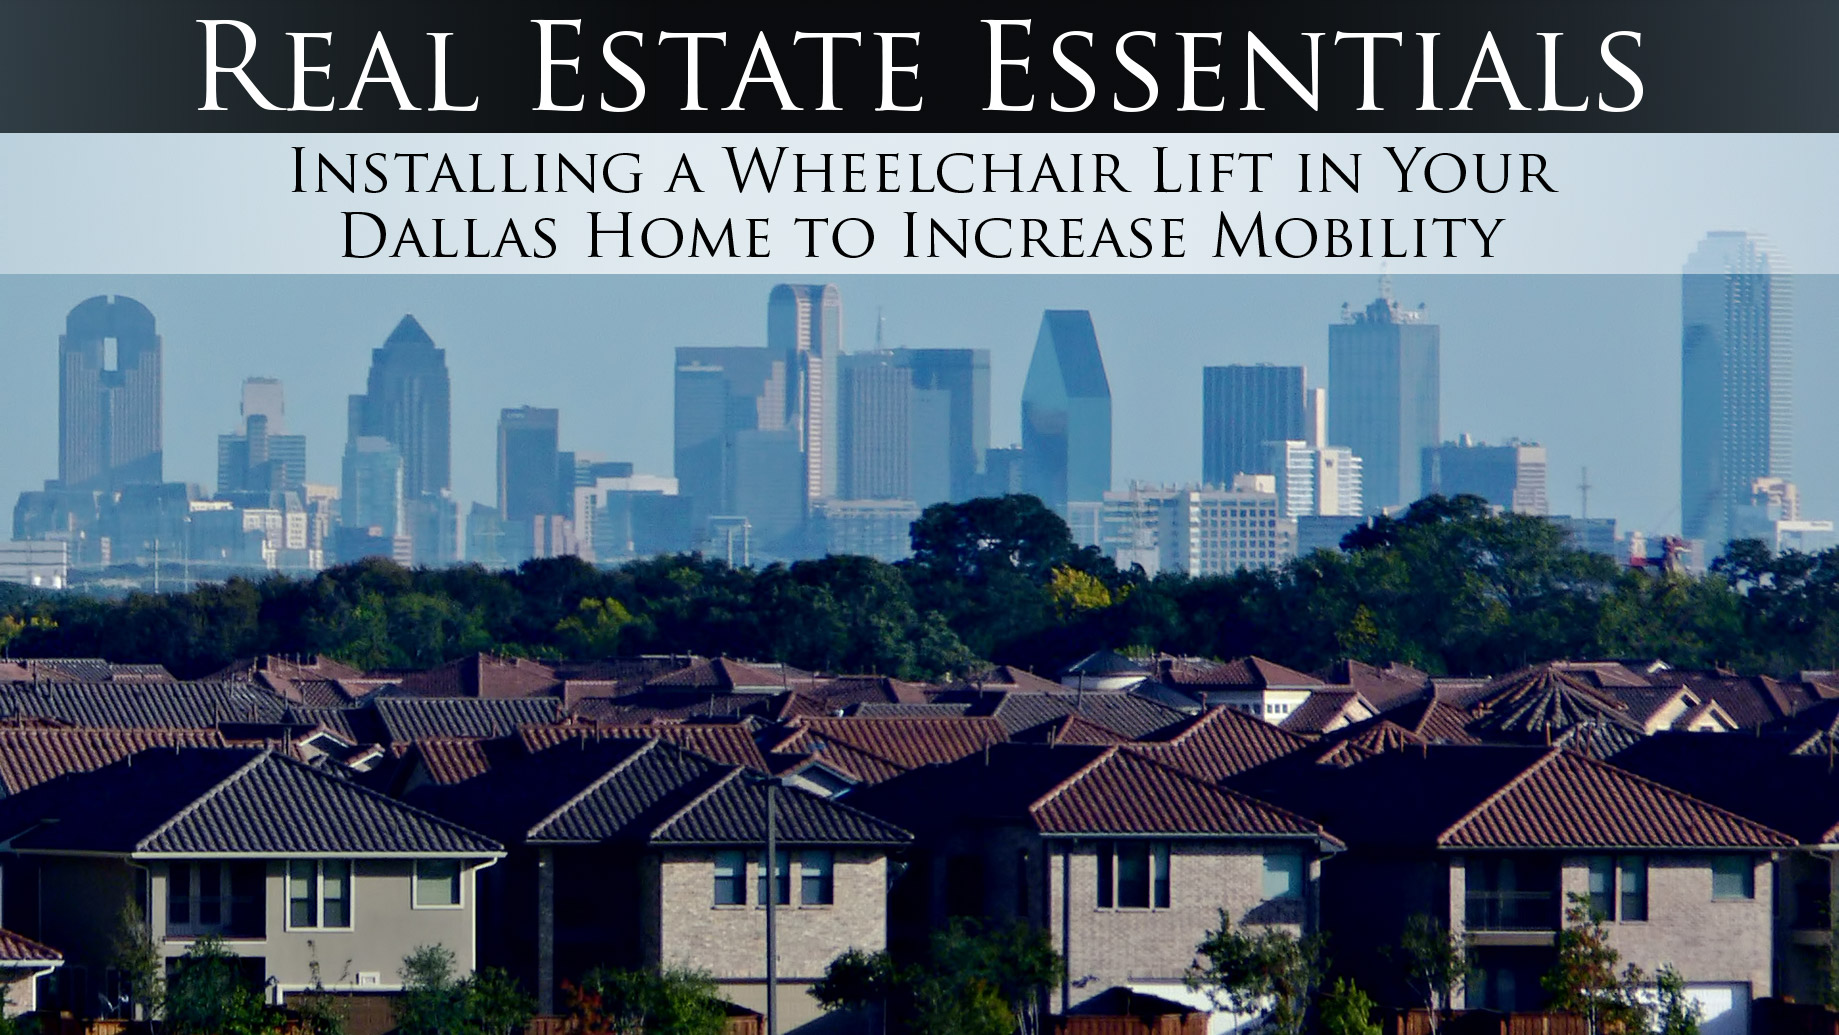 Real Estate Essentials - Installing a Wheelchair Lift in Your Dallas Home to Increase Mobility